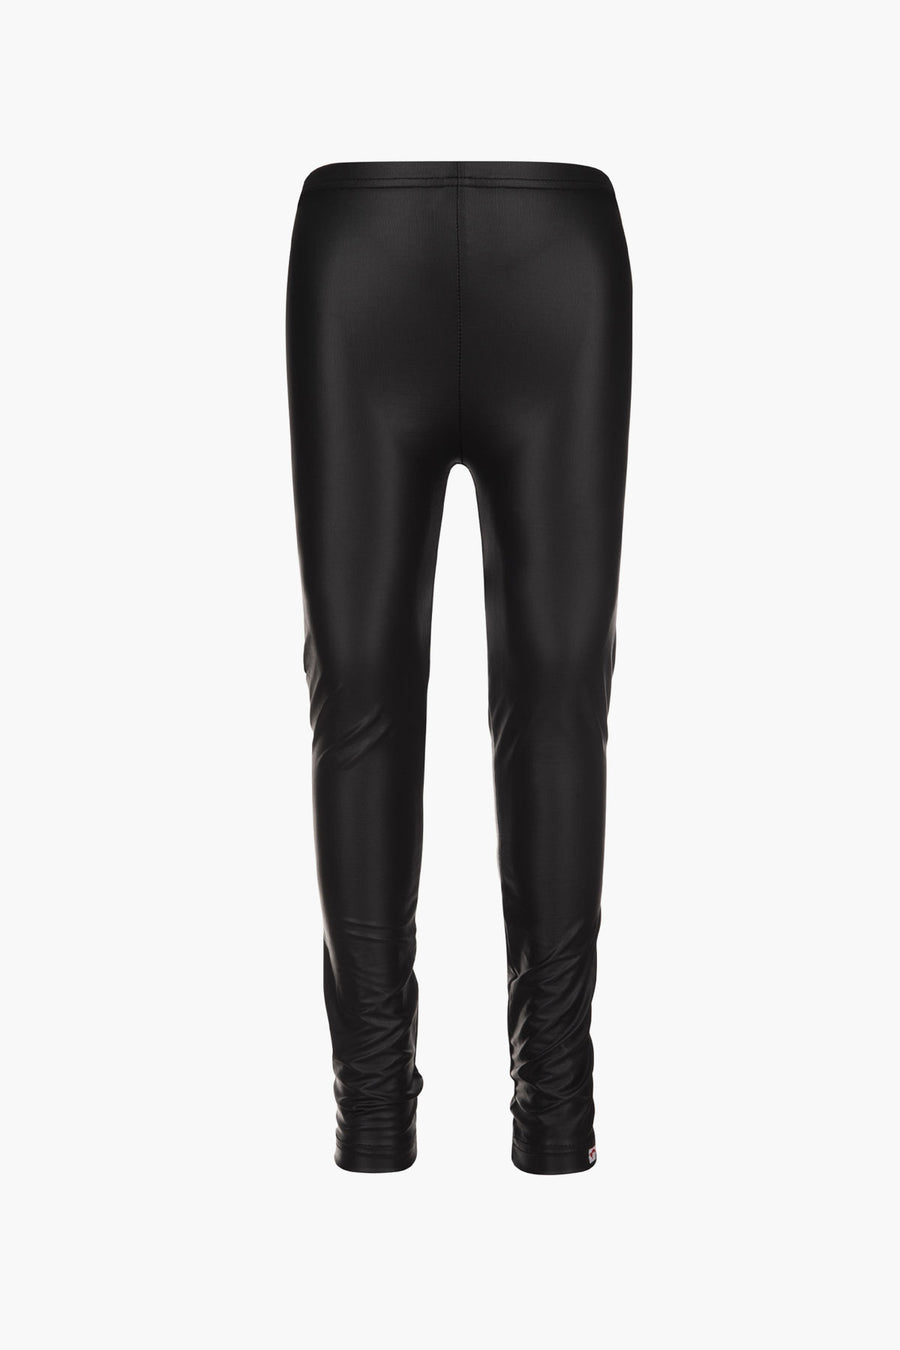 Appaman Black Girls Leggings